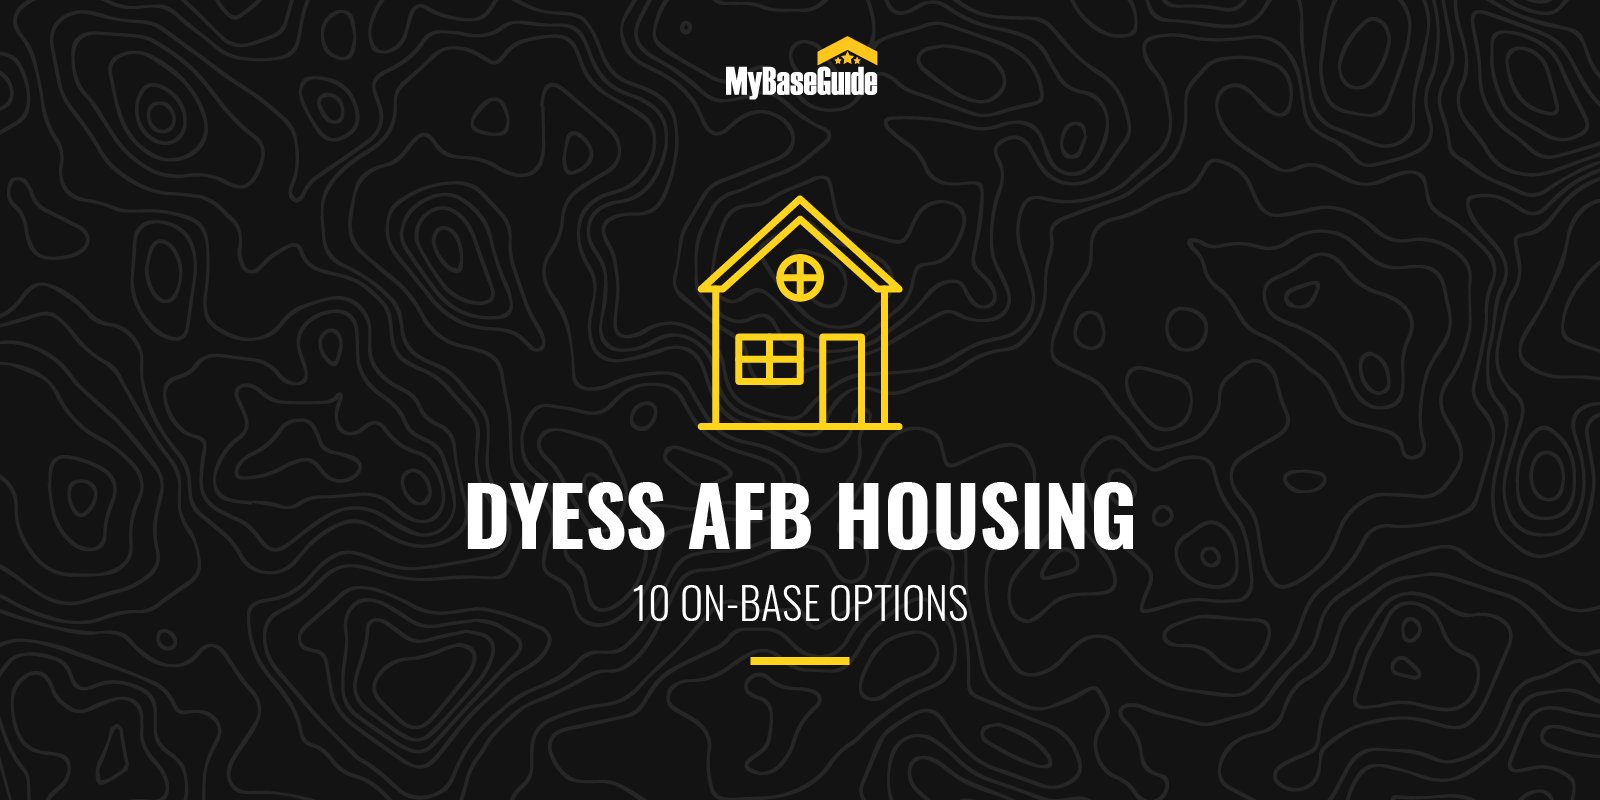 Dyess AFB Housing: 10 On-Base Options